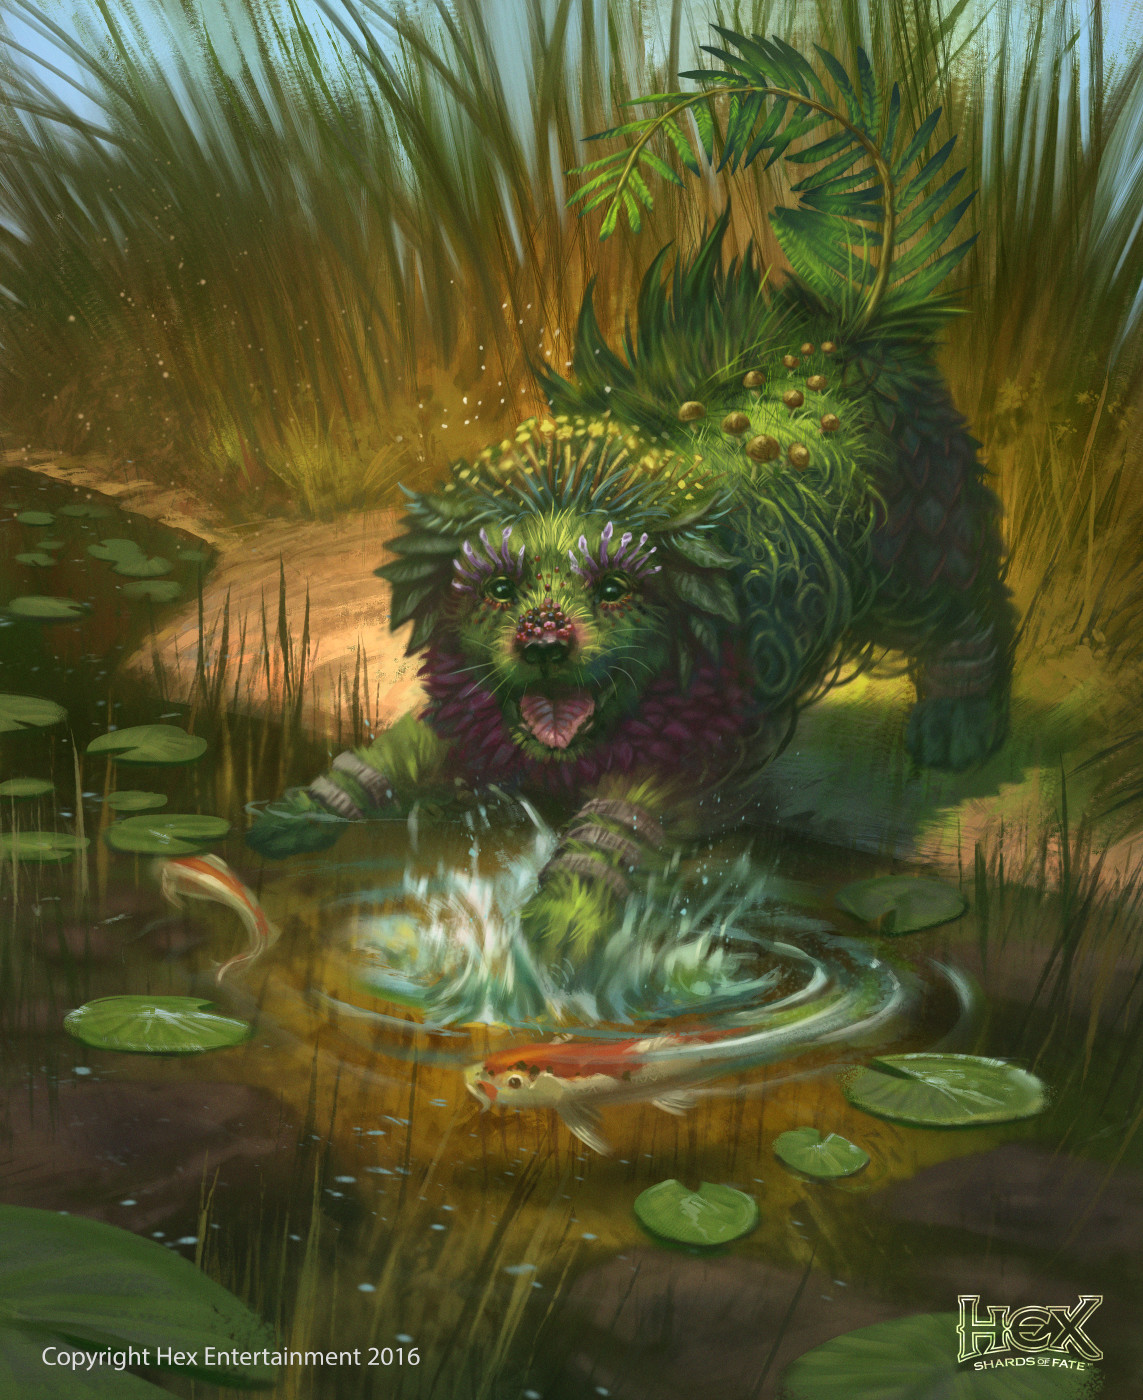 Thorn Pup | Copyright Hex Entertainment 2016